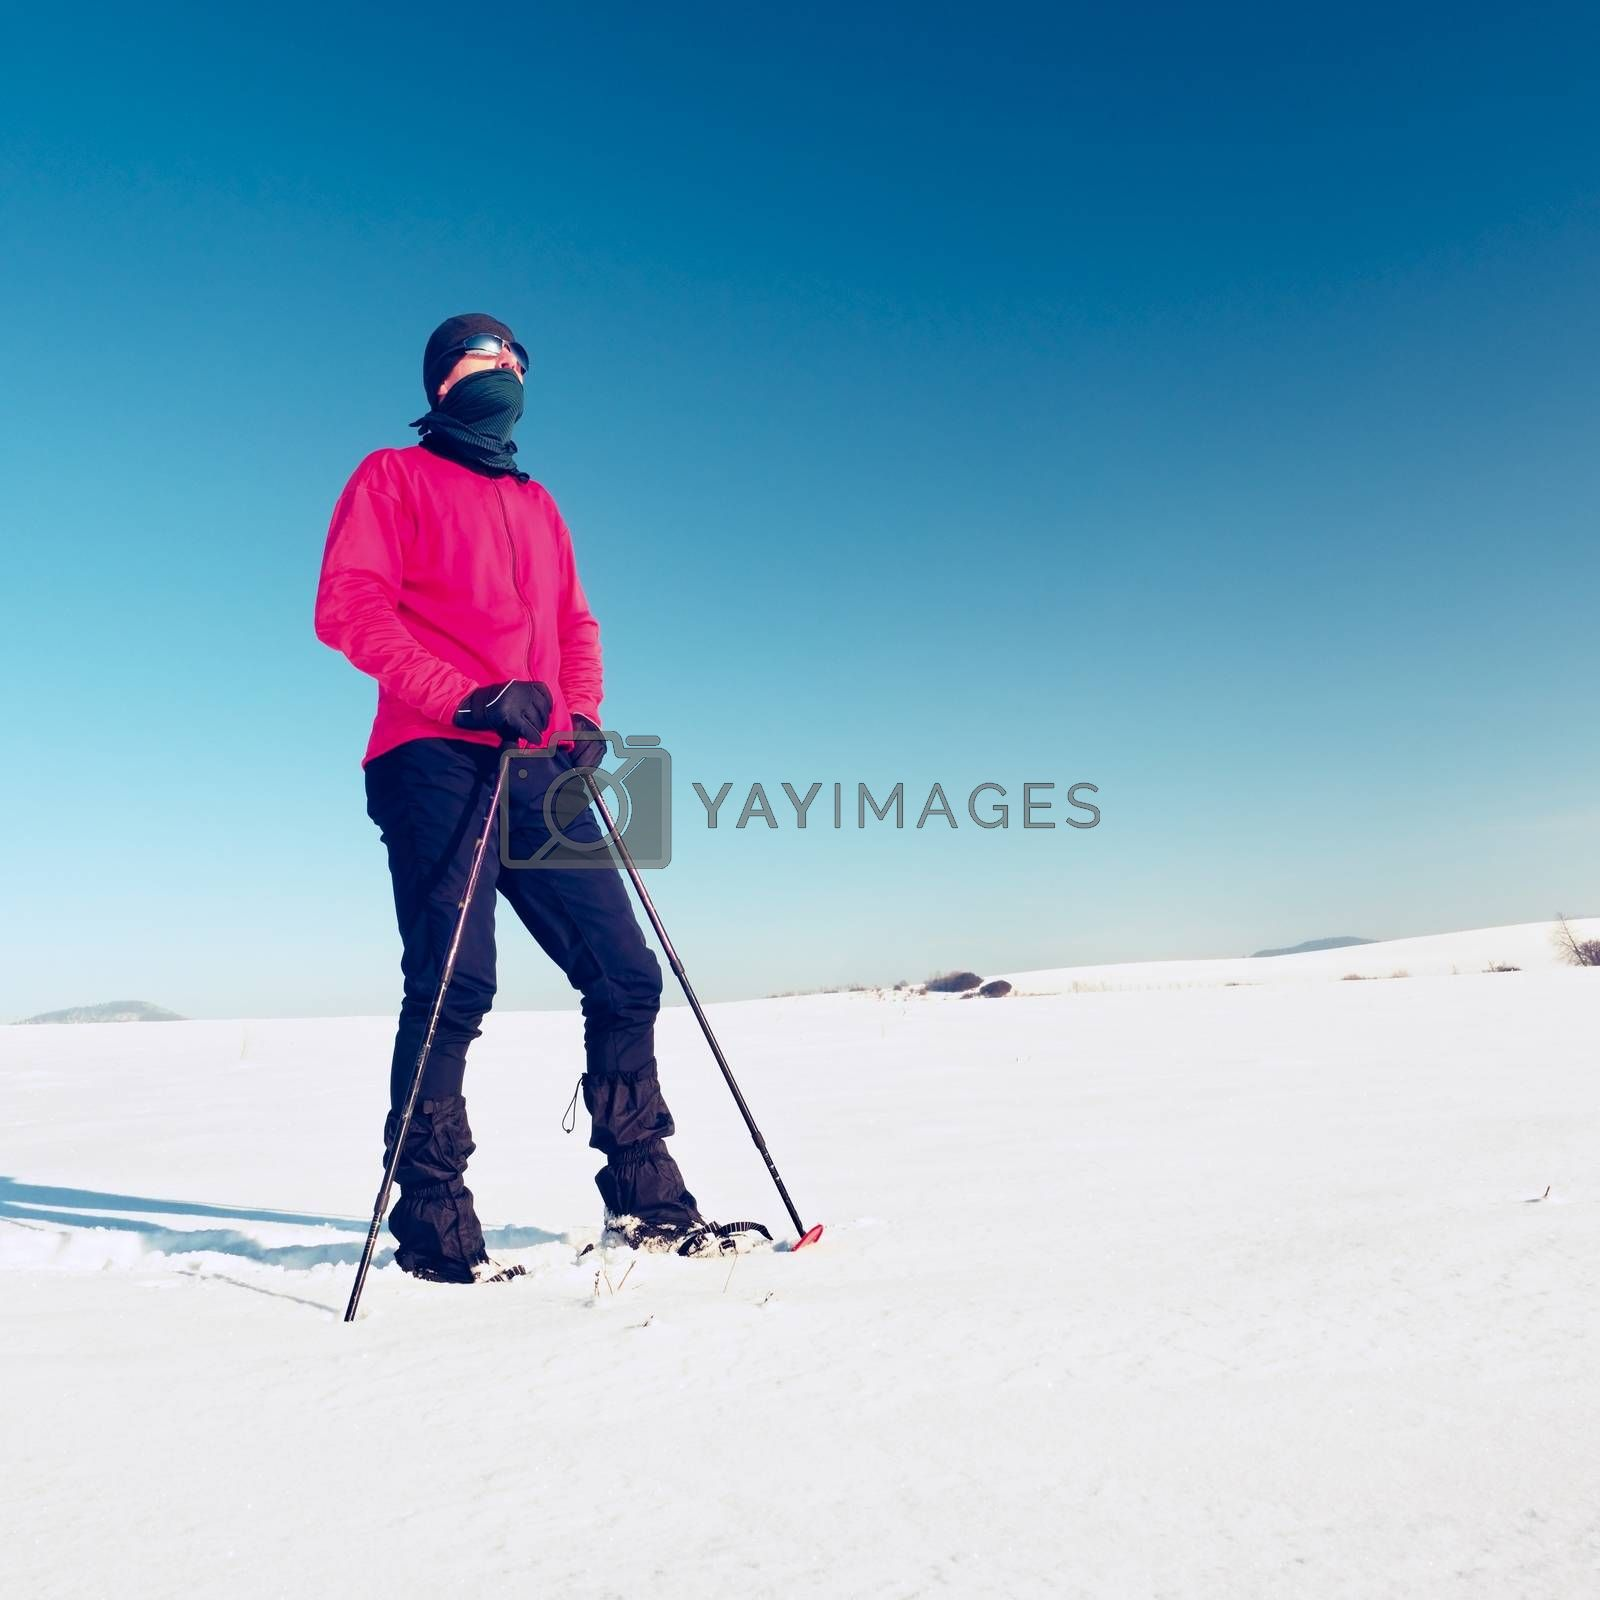 Winter tourist with snowshoes walk in snowy drift. Hiker in pink sports jacket and black trekking trousers snowshoeing in powder snow. Cloudy winter day, gentle wind brings small snow flakes.